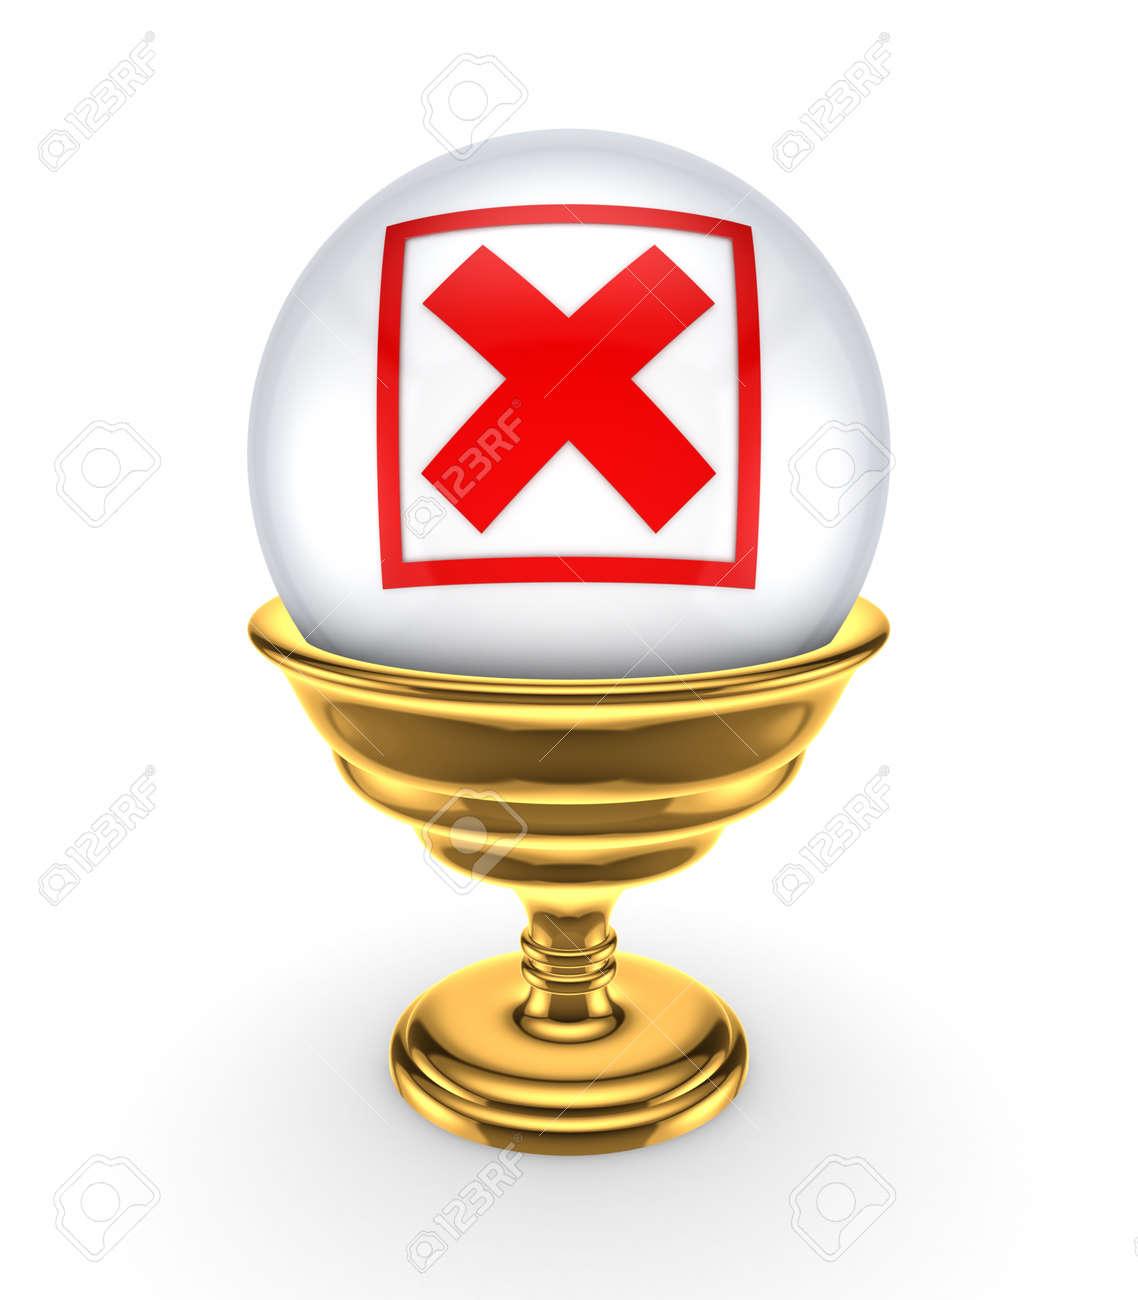 Red cross mark on a white sphere Stock Photo - 15666931